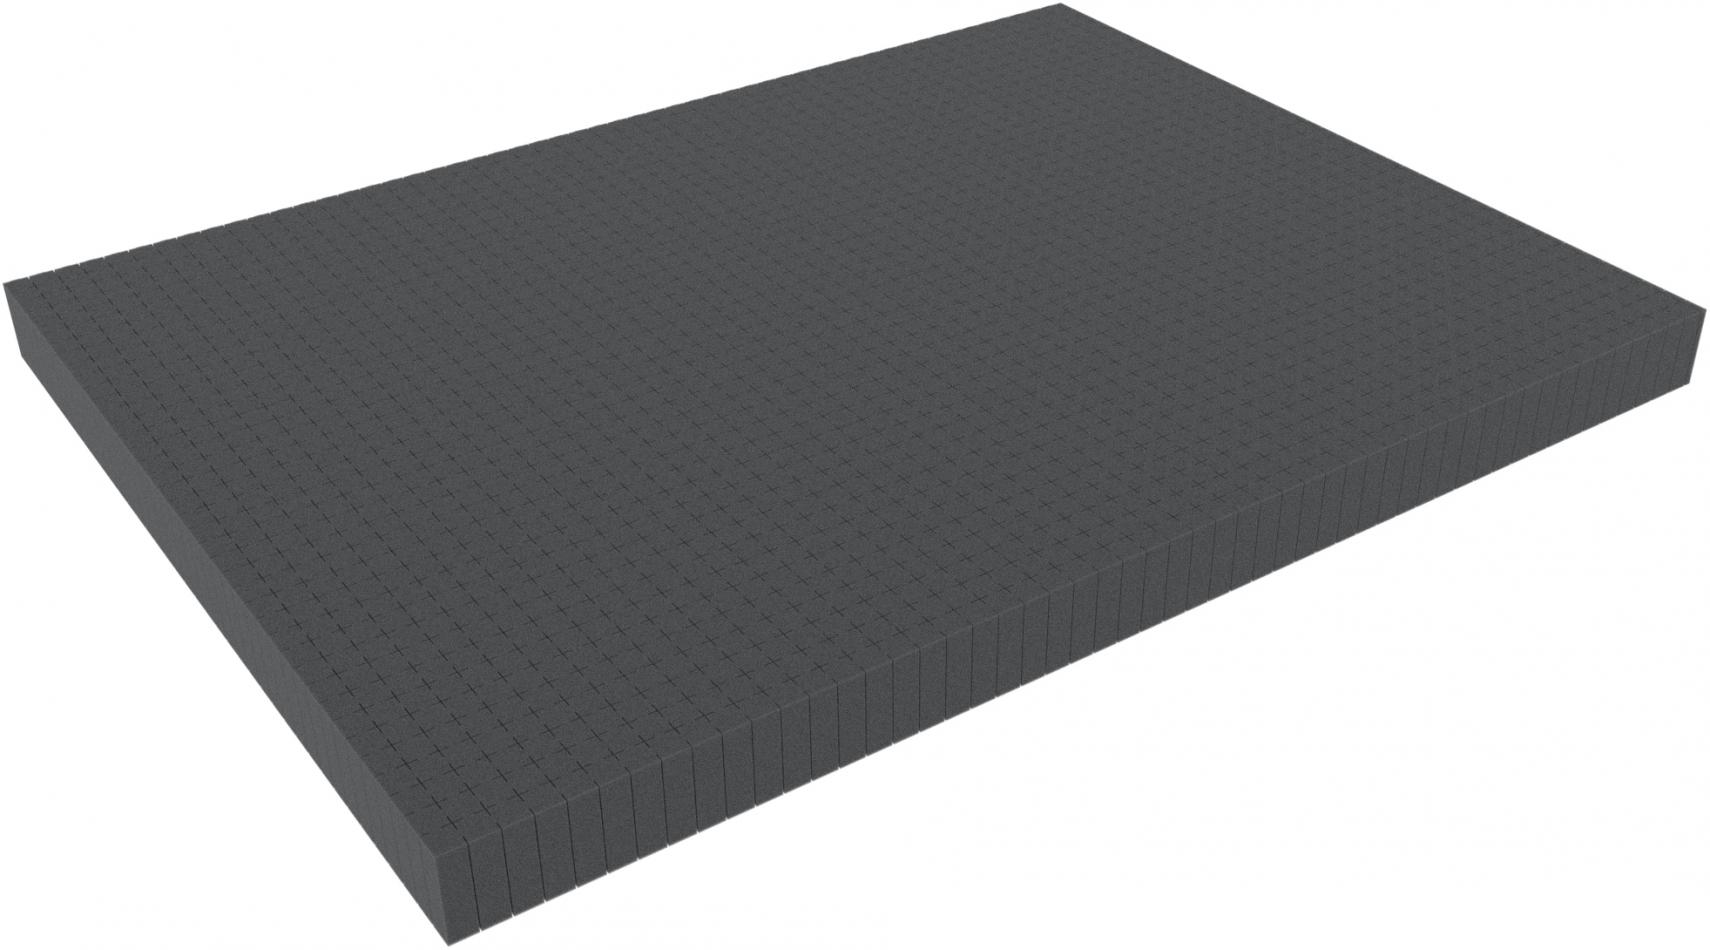 800 mm x 600 mm x 50 mm - Raster 15 mm - Pick and Pluck / Pre-Cubed foam tray